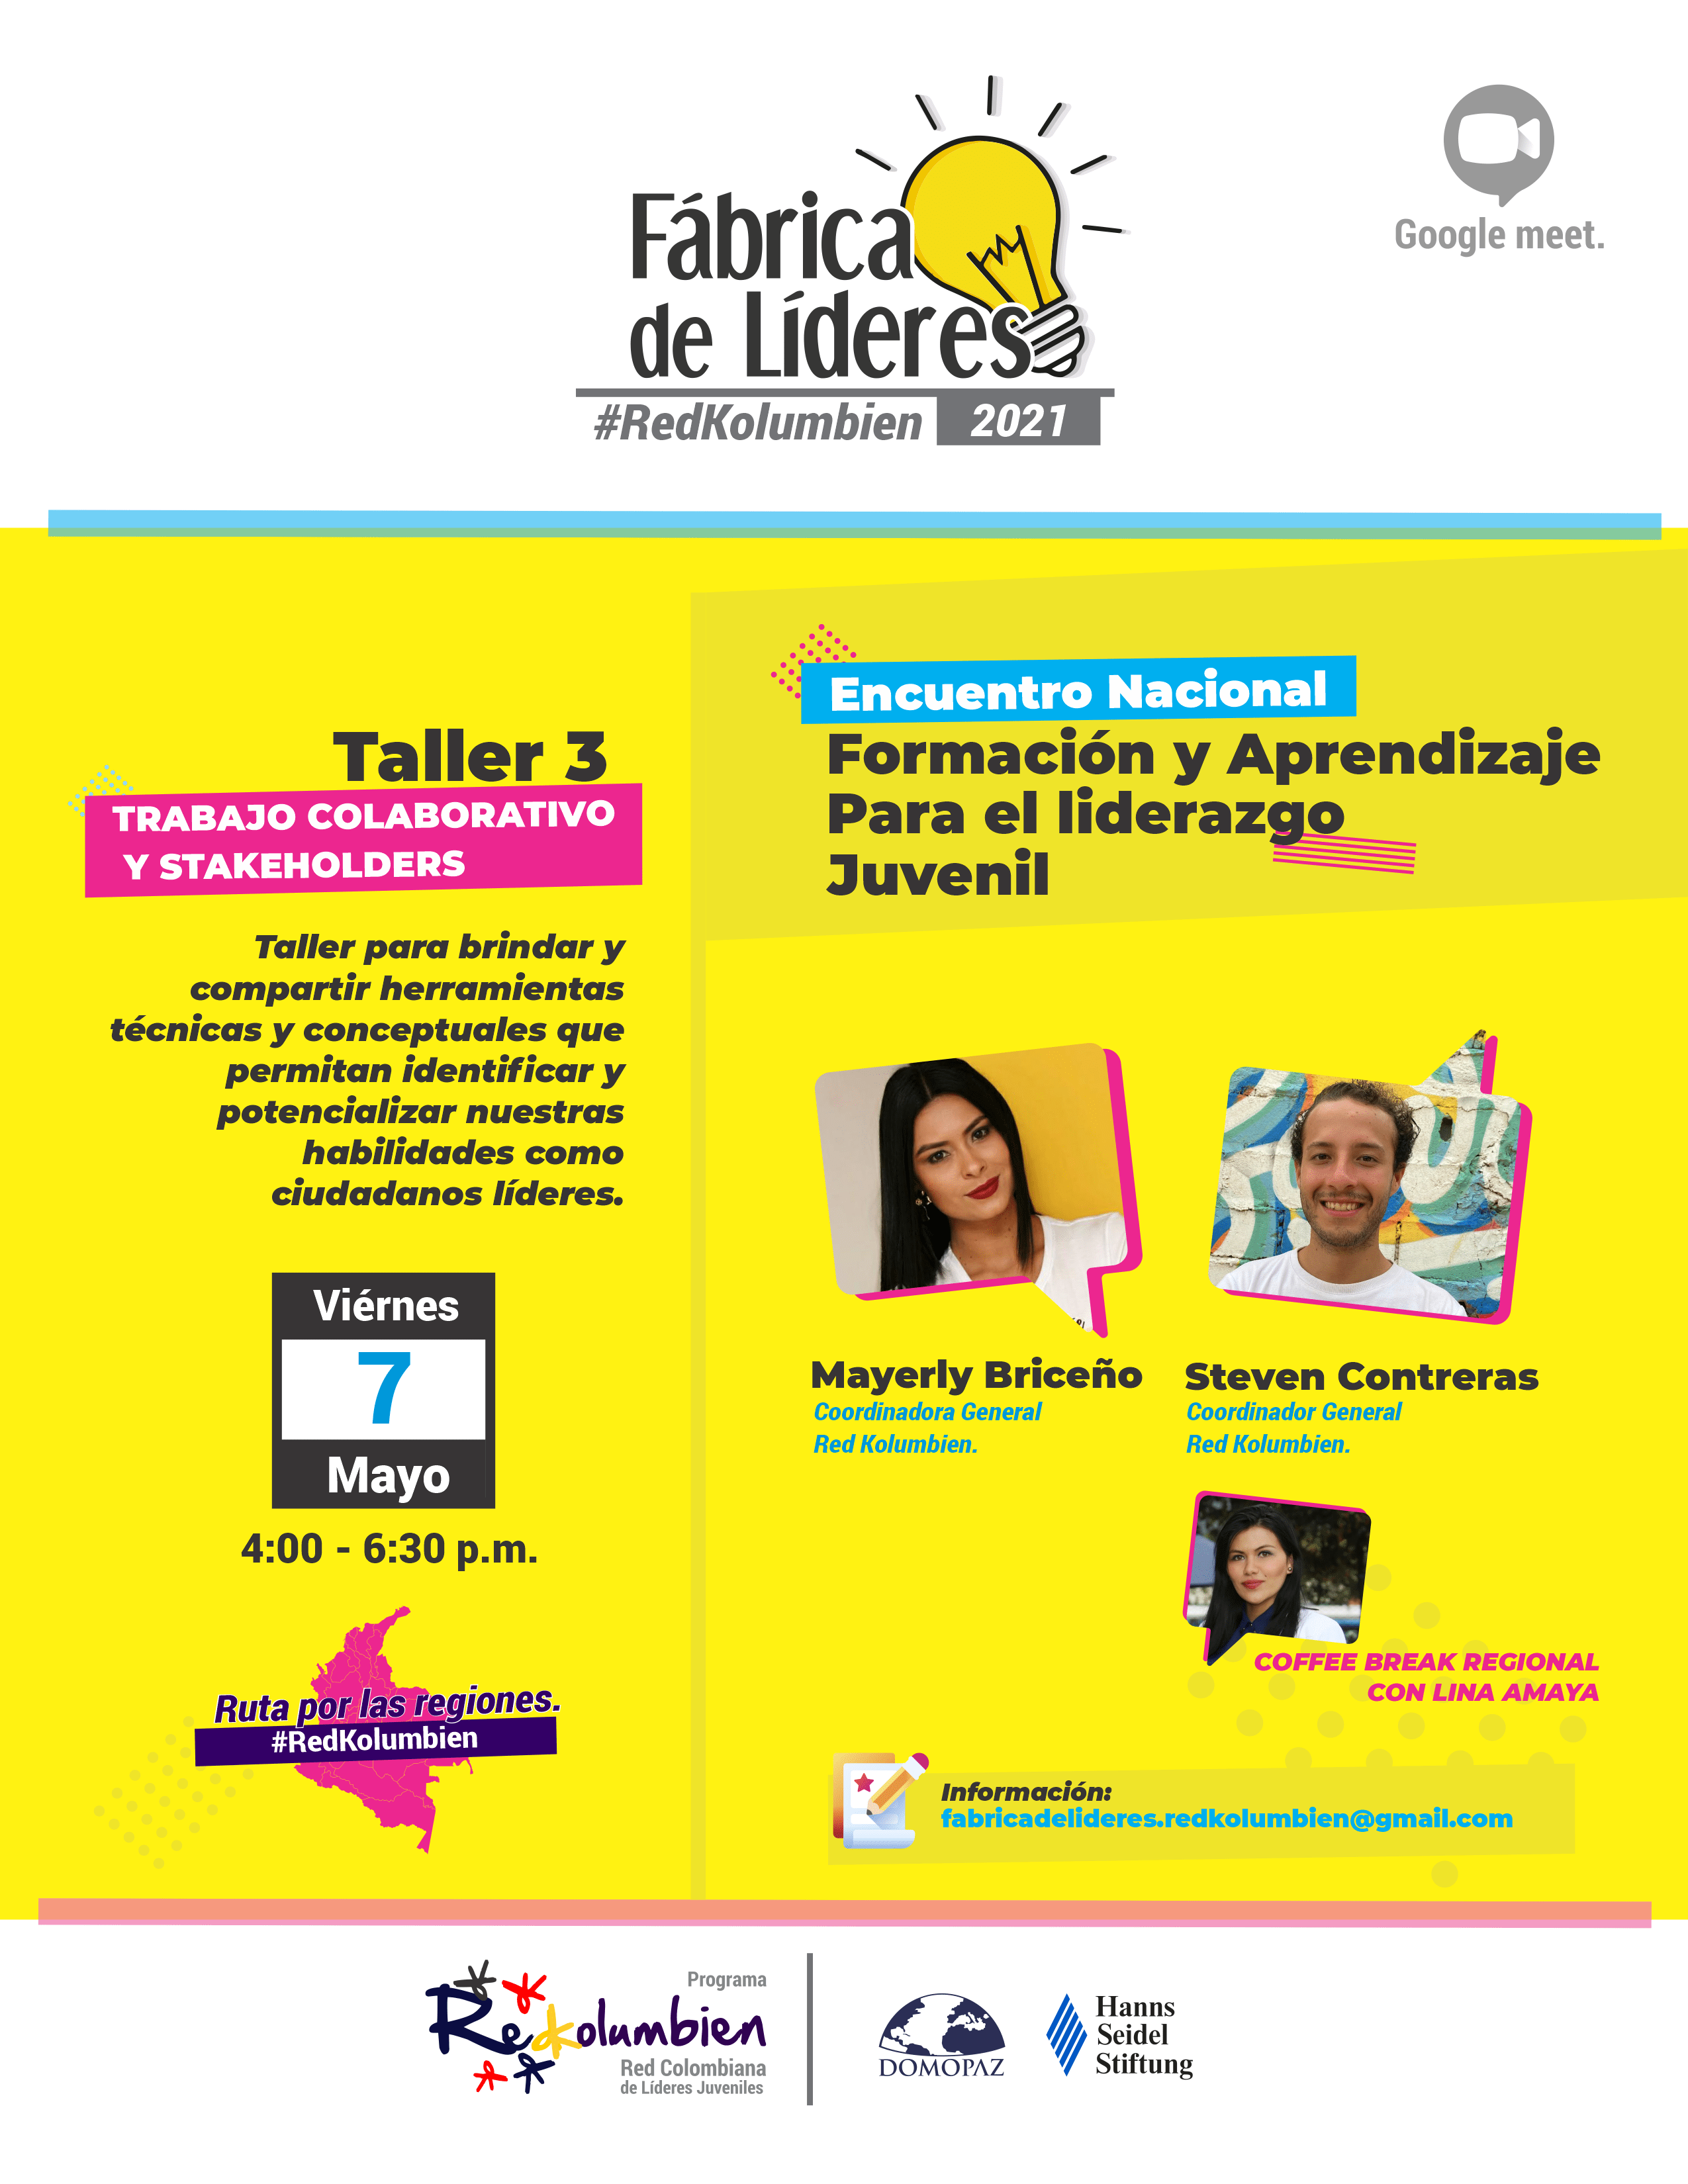 AFICHE TALLER 3 FAB LID MAY 2021